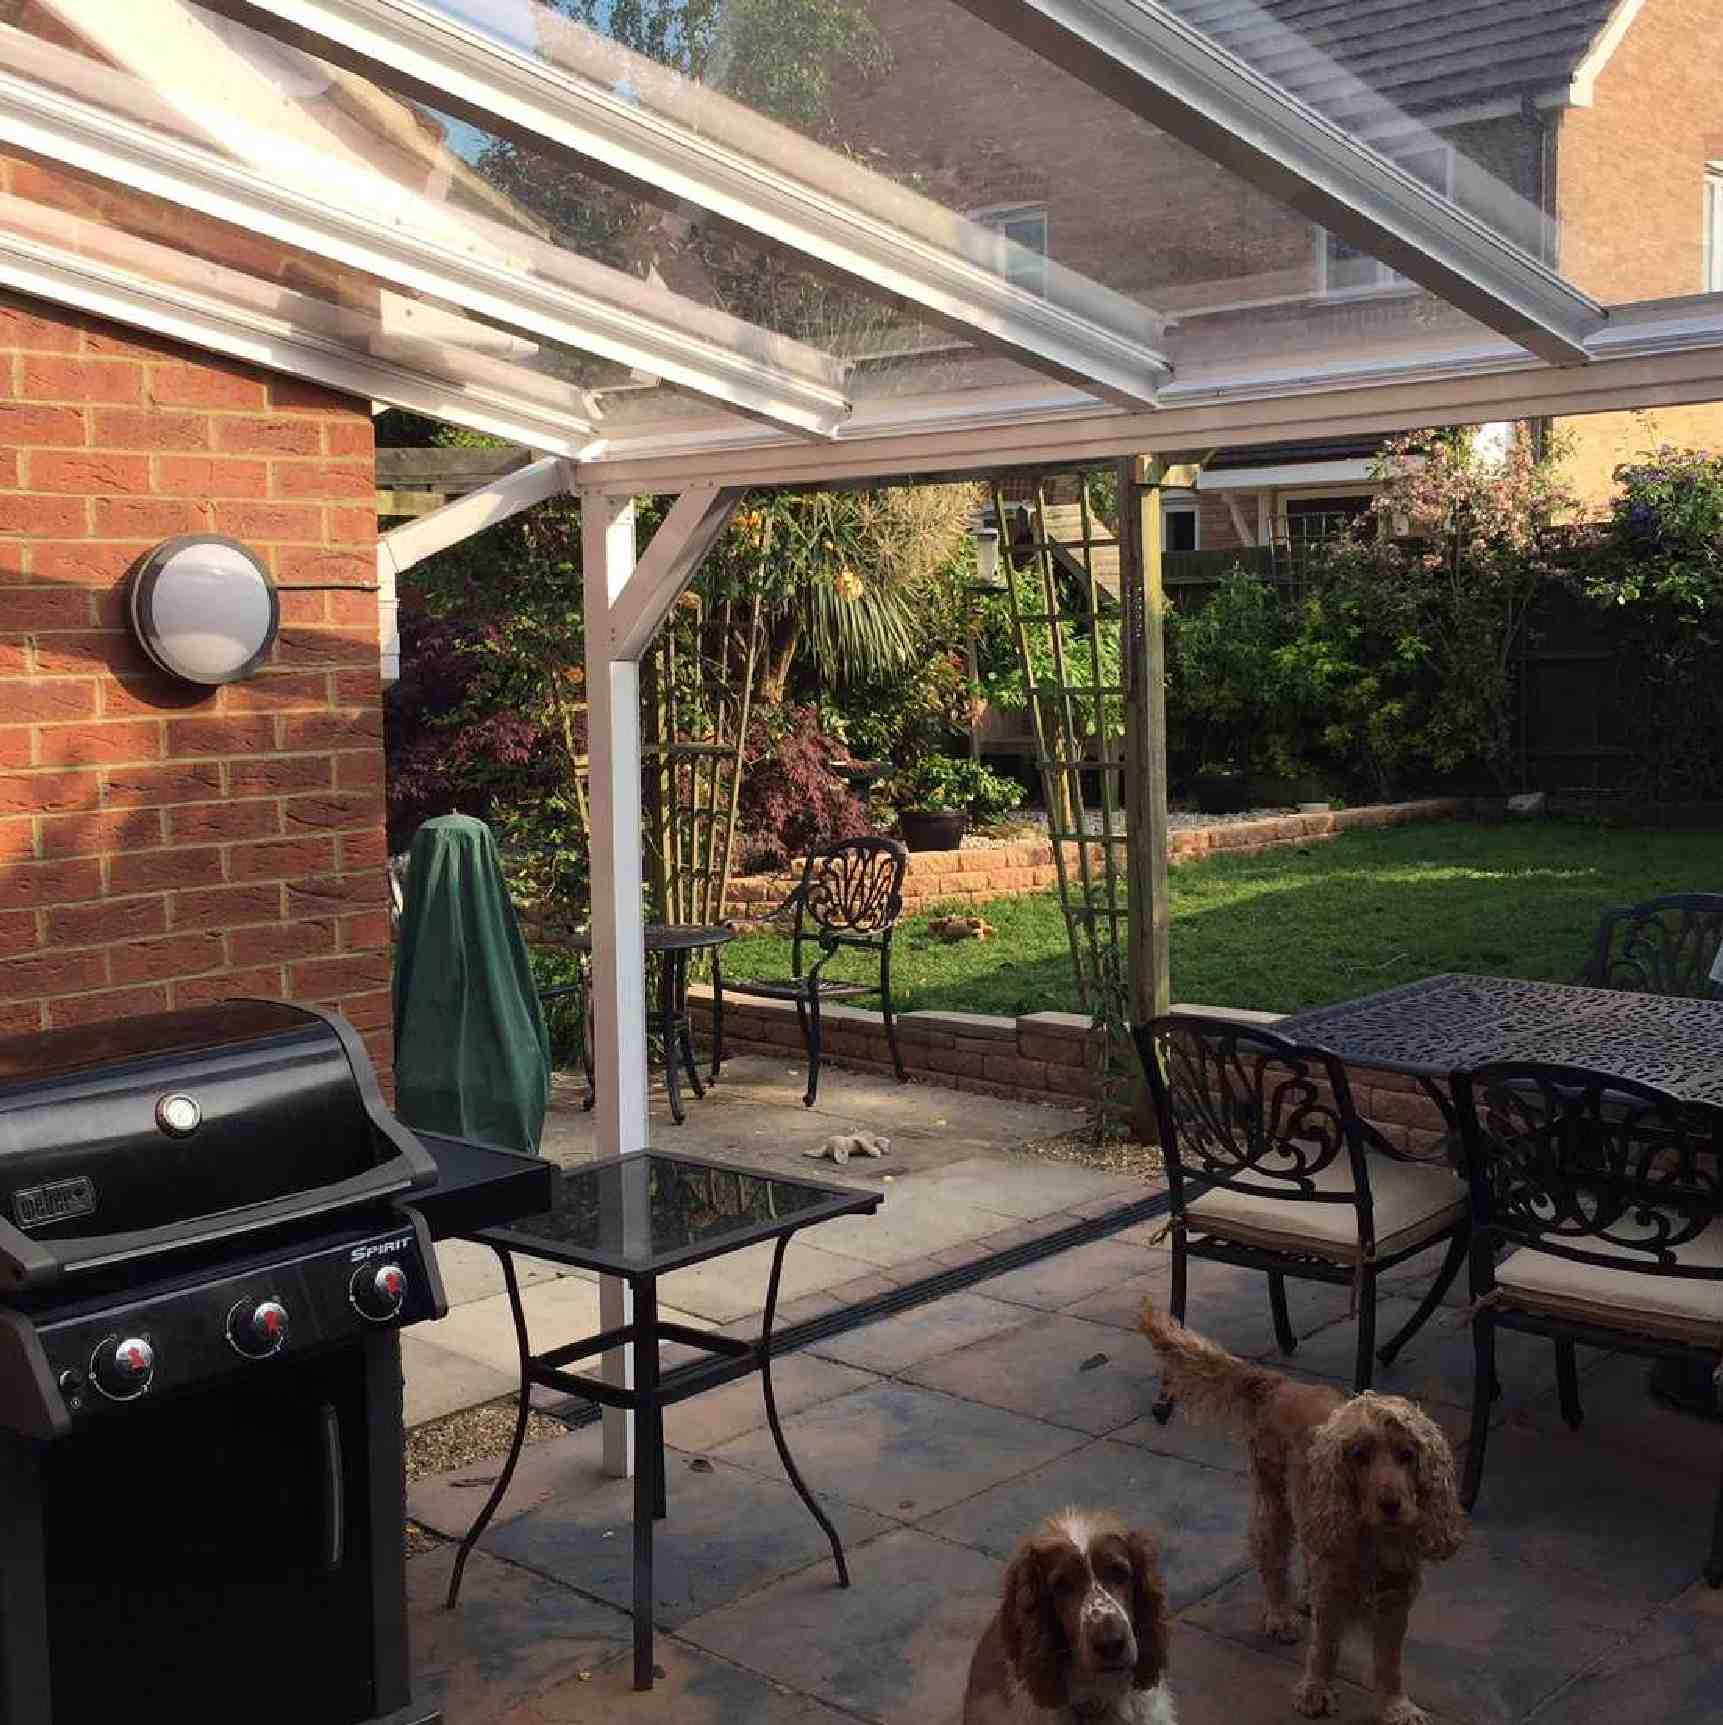 Omega Verandah with 16mm Polycarbonate Glazing - 5.2m (W) x 2.5m (P), (3) Supporting Posts